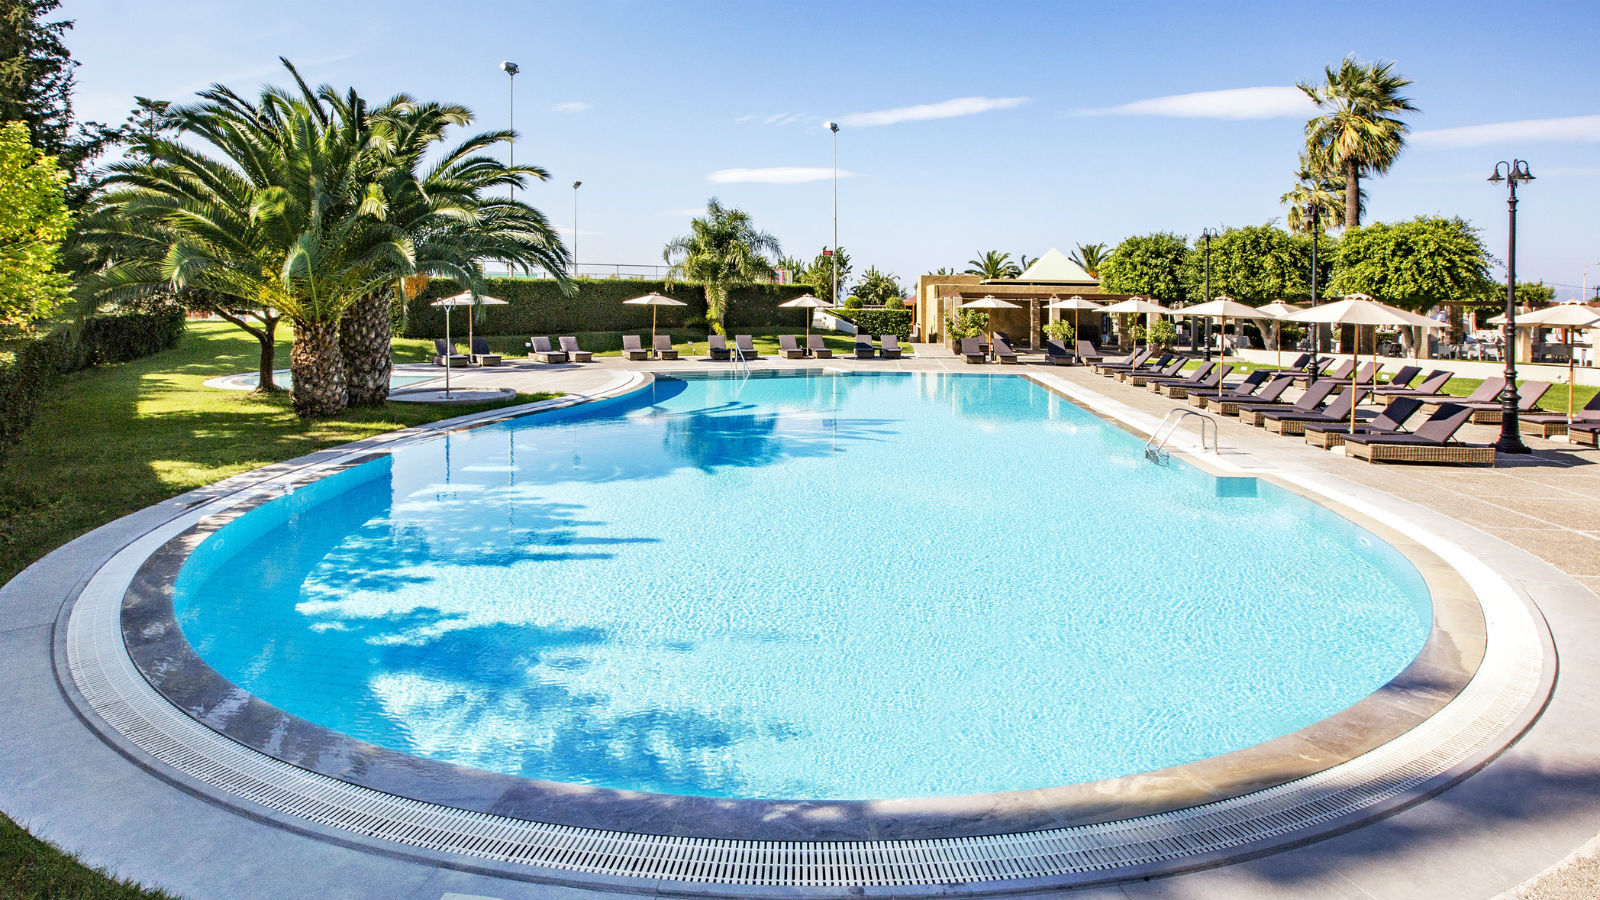 Features And Activities At The Sheraton Rhodes Resort